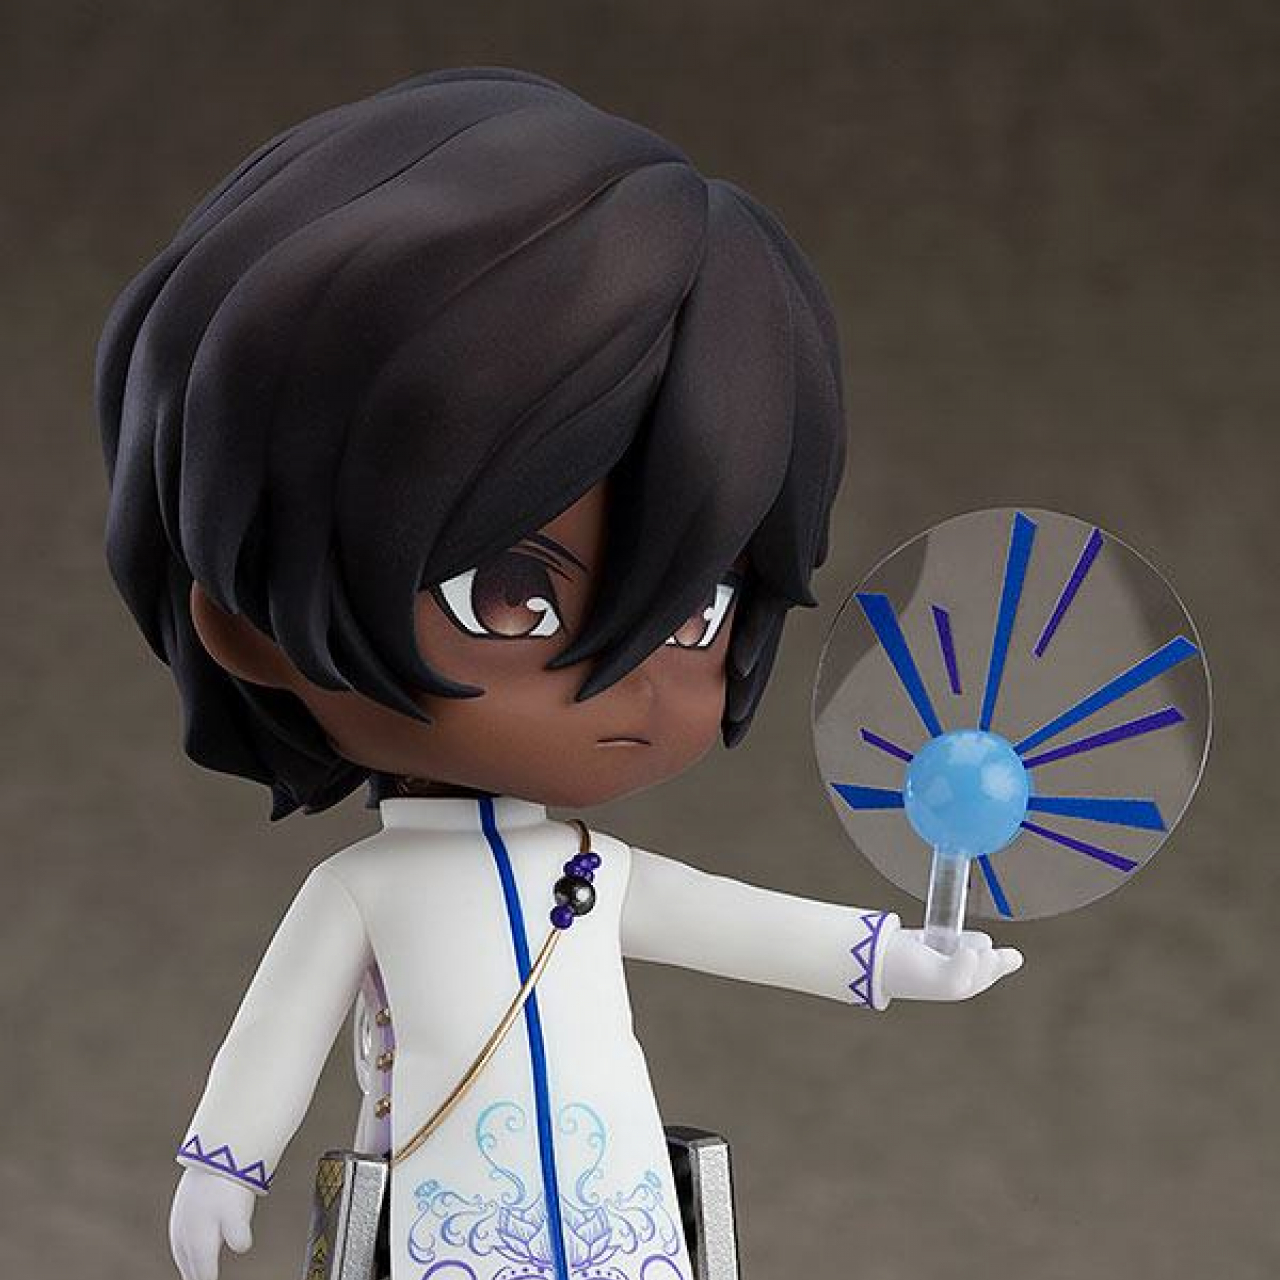 Fate/Grand Order Nendoroid Action Figure Archer/Arjuna 10 cm